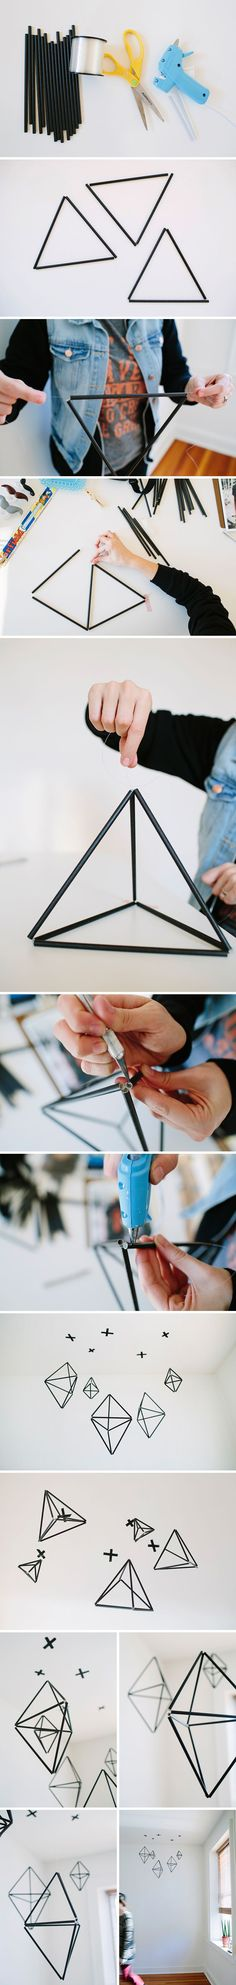 DIY -- Geometric Straw Mobile